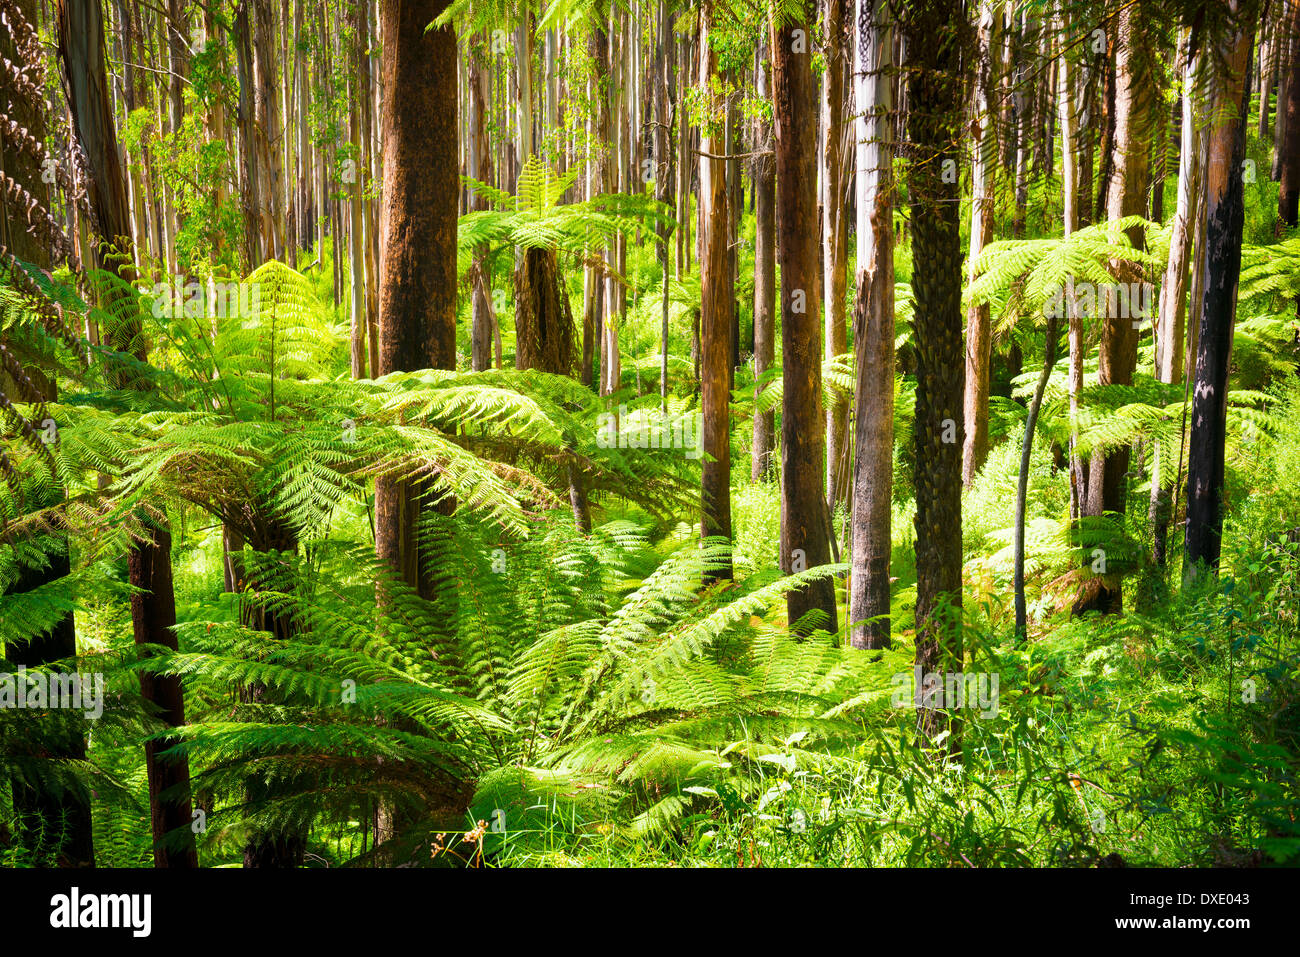 Lush green ferns, tree ferns and towering mountain ash along the Black Spur, Victoria, Australia Stock Photo